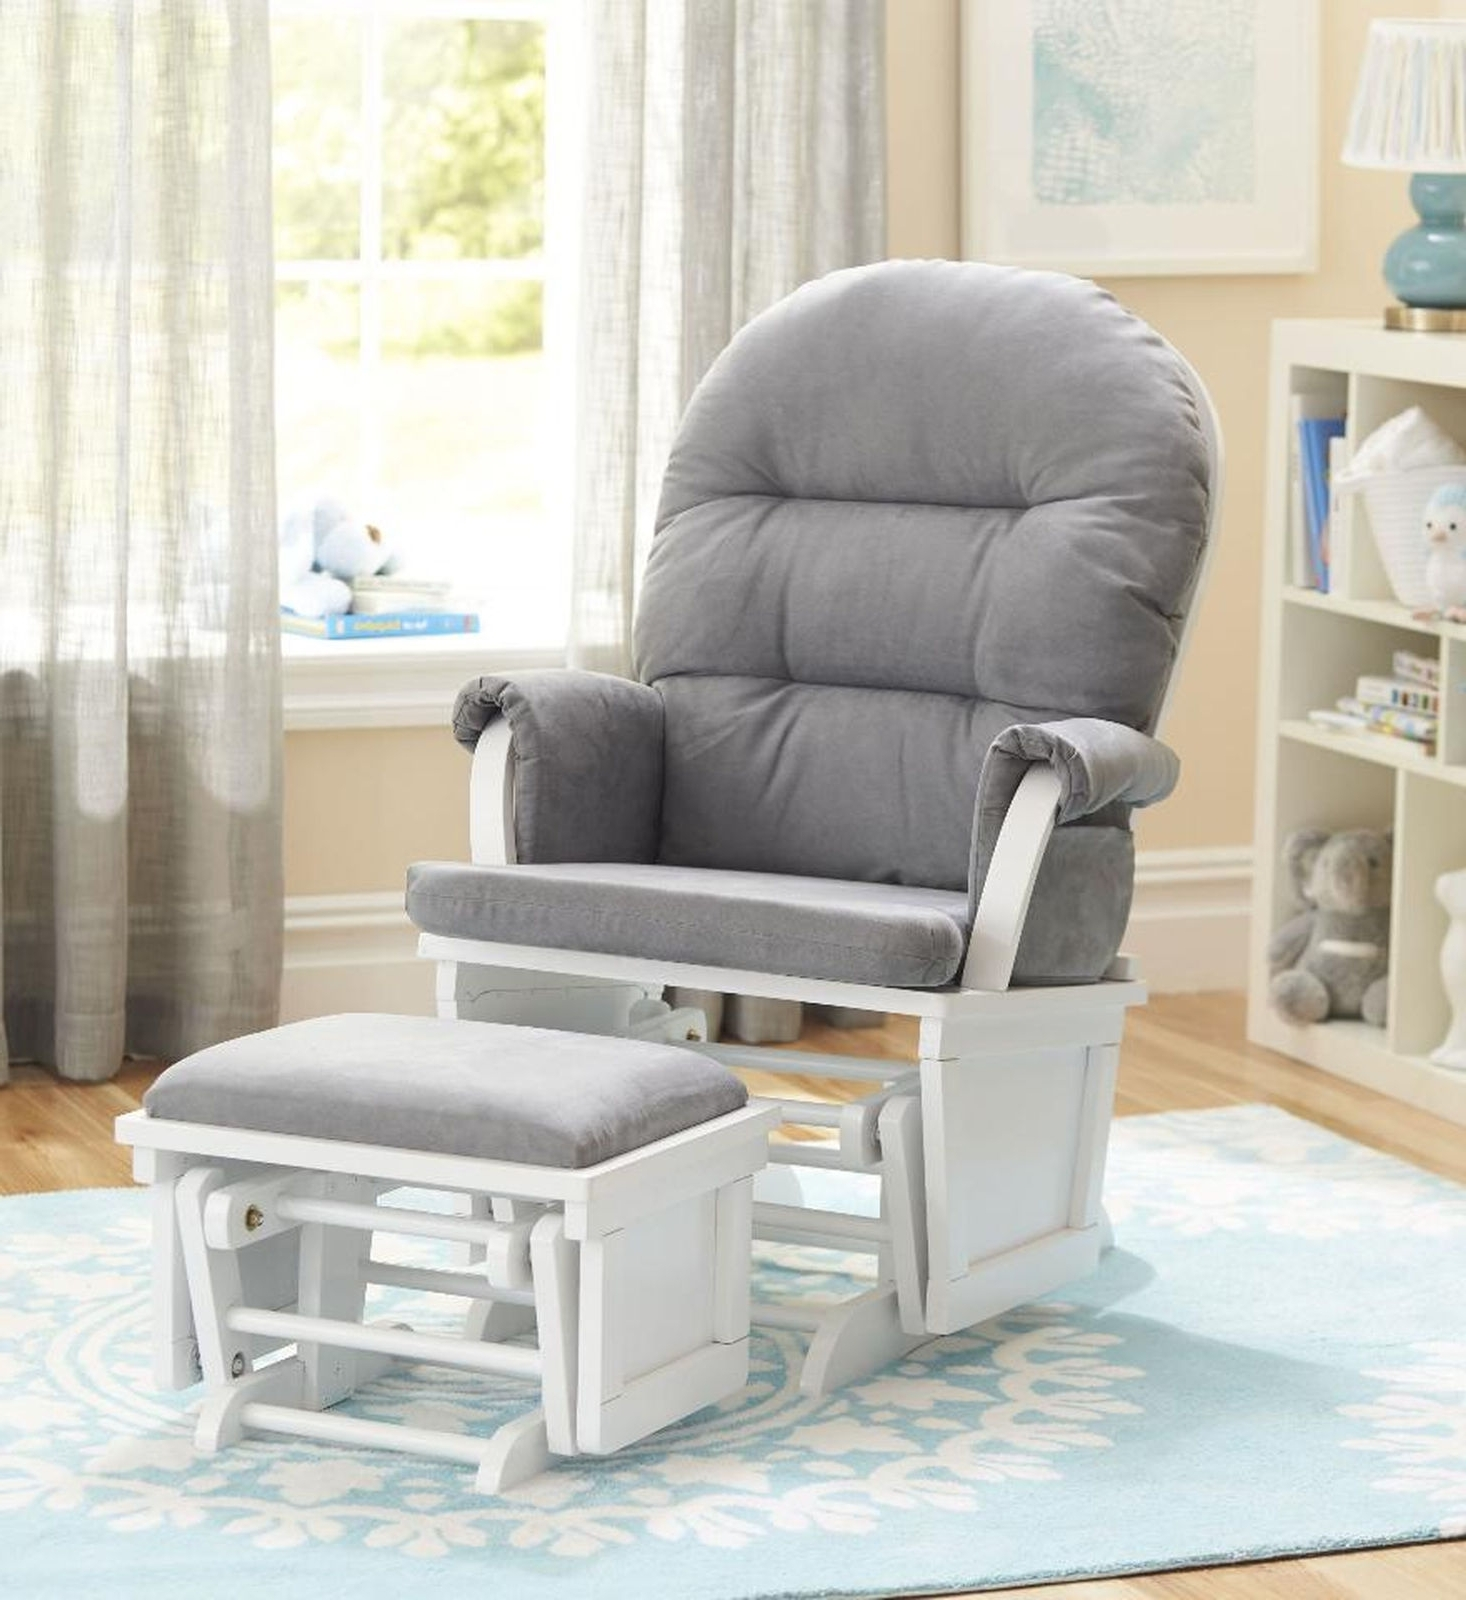 Living Room Furniture : Shermag Aiden Glider Ottoman Set White With Inside Widely Used Rocking Chairs For Nursery (View 7 of 20)